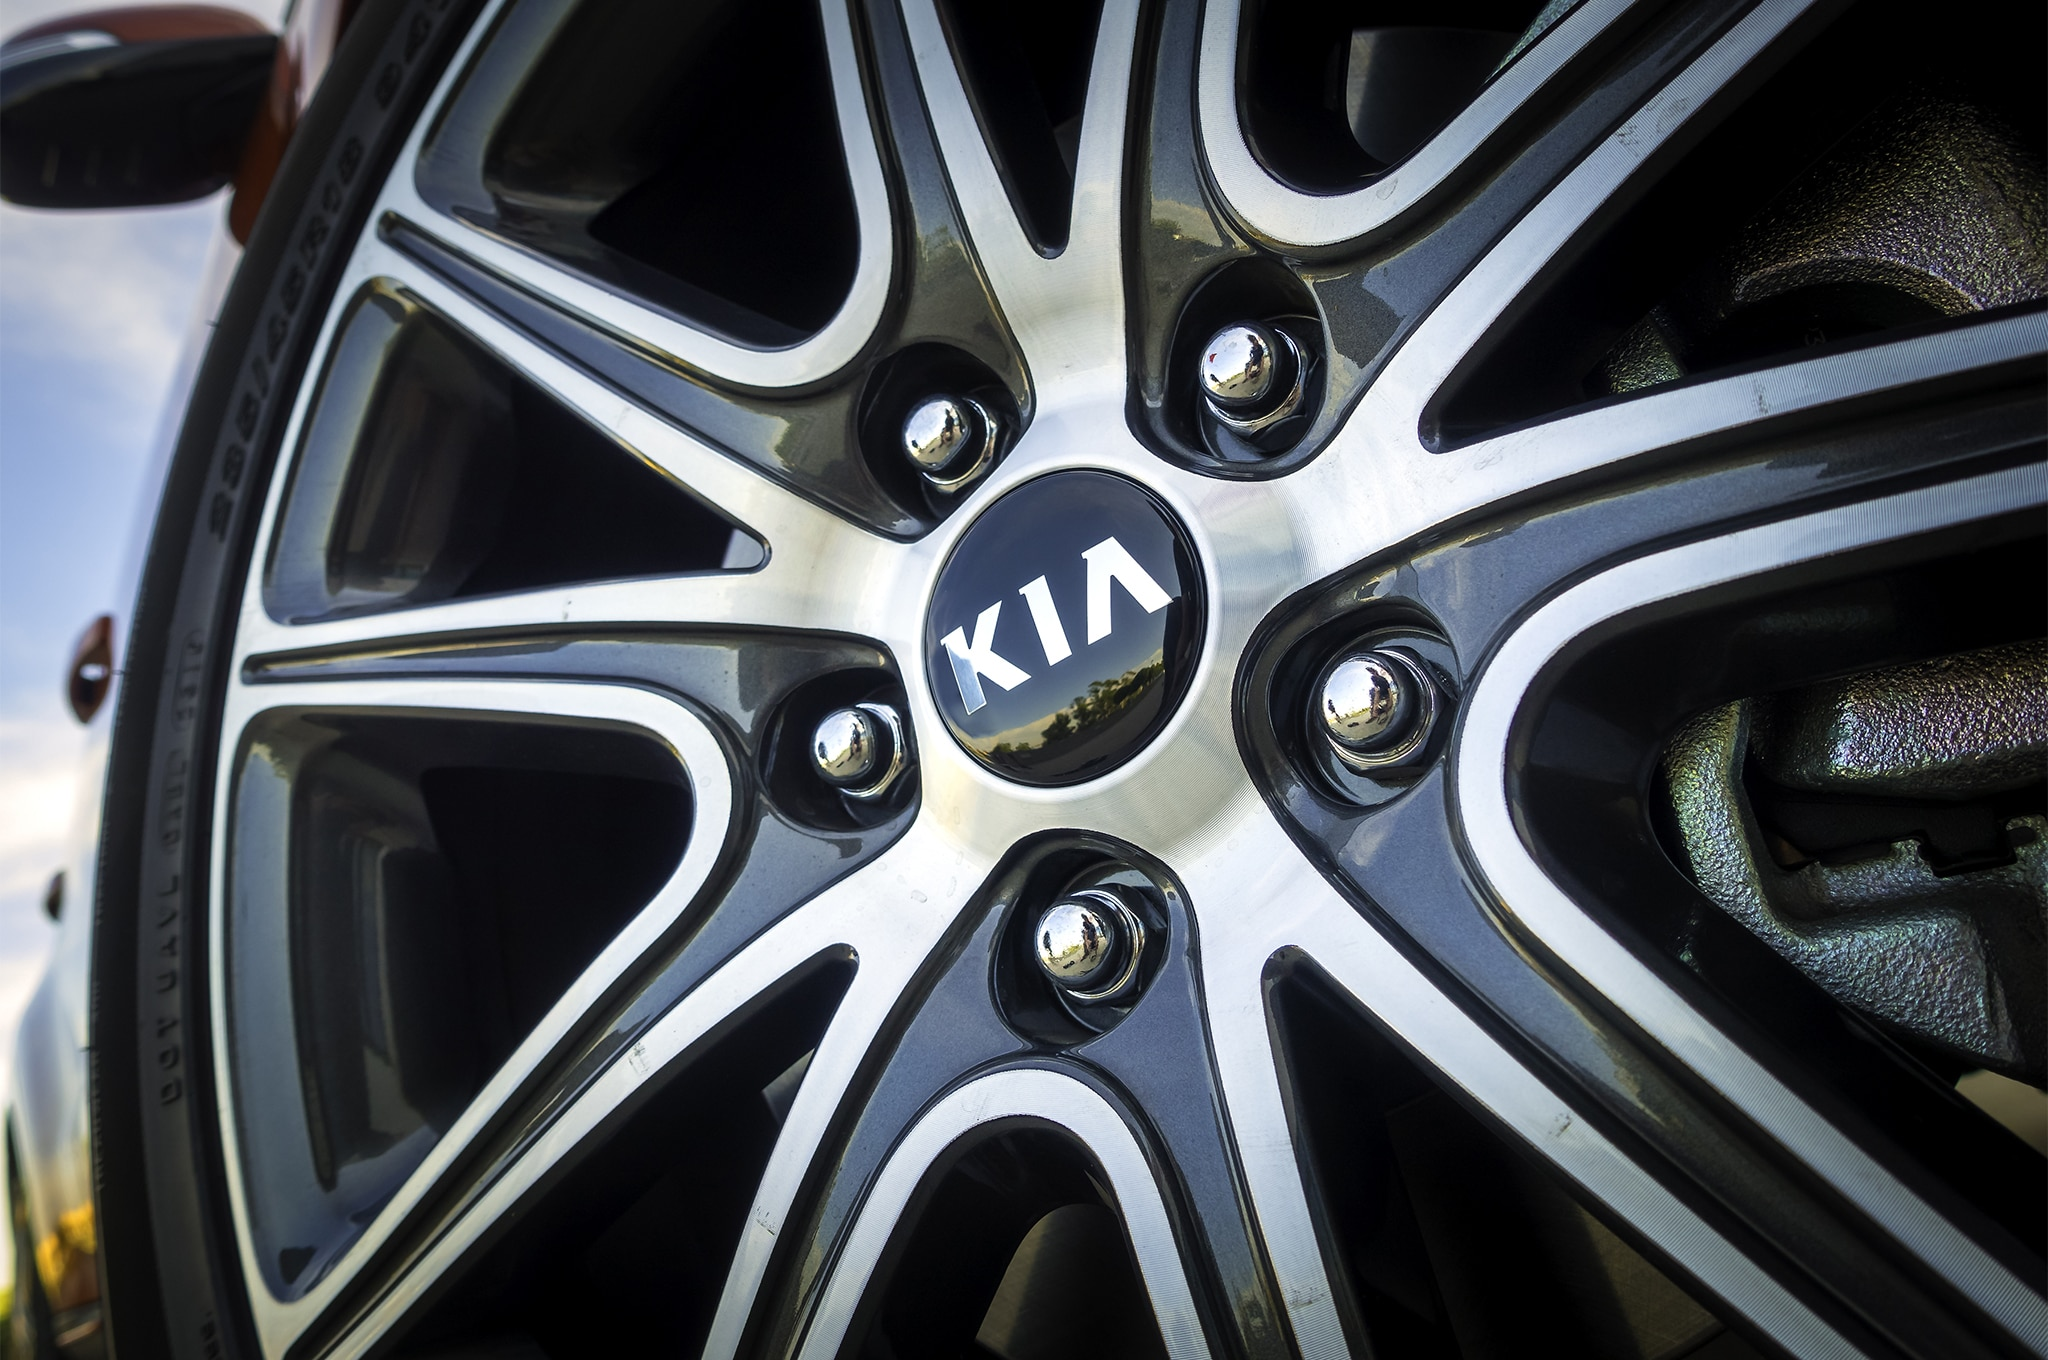 2017 Kia Soul Turbo wheels